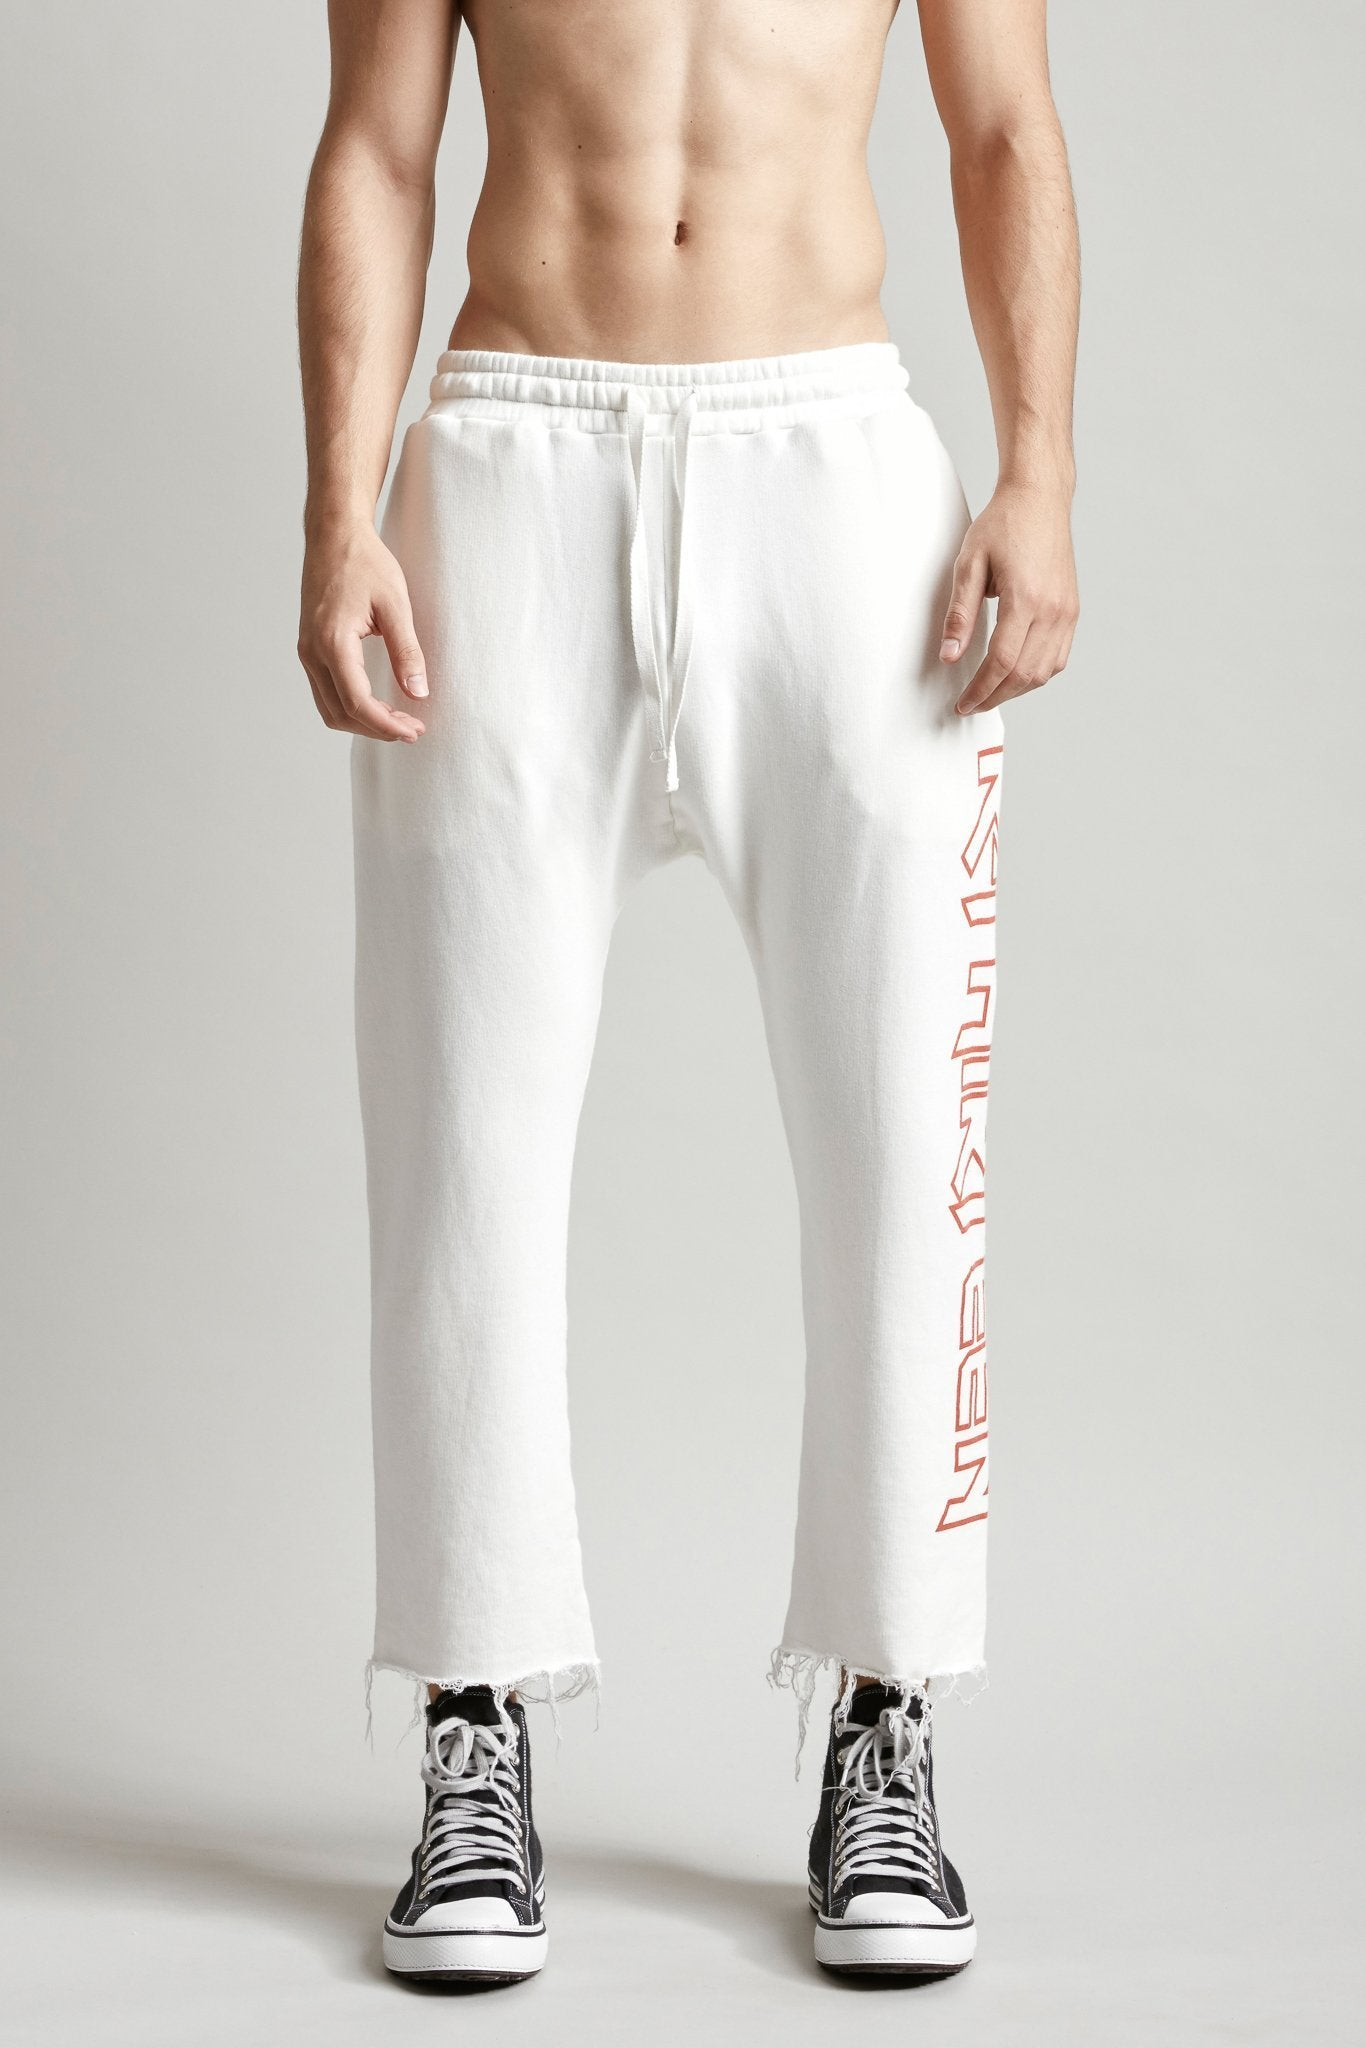 RTHIRTEEN Sweatpants - White